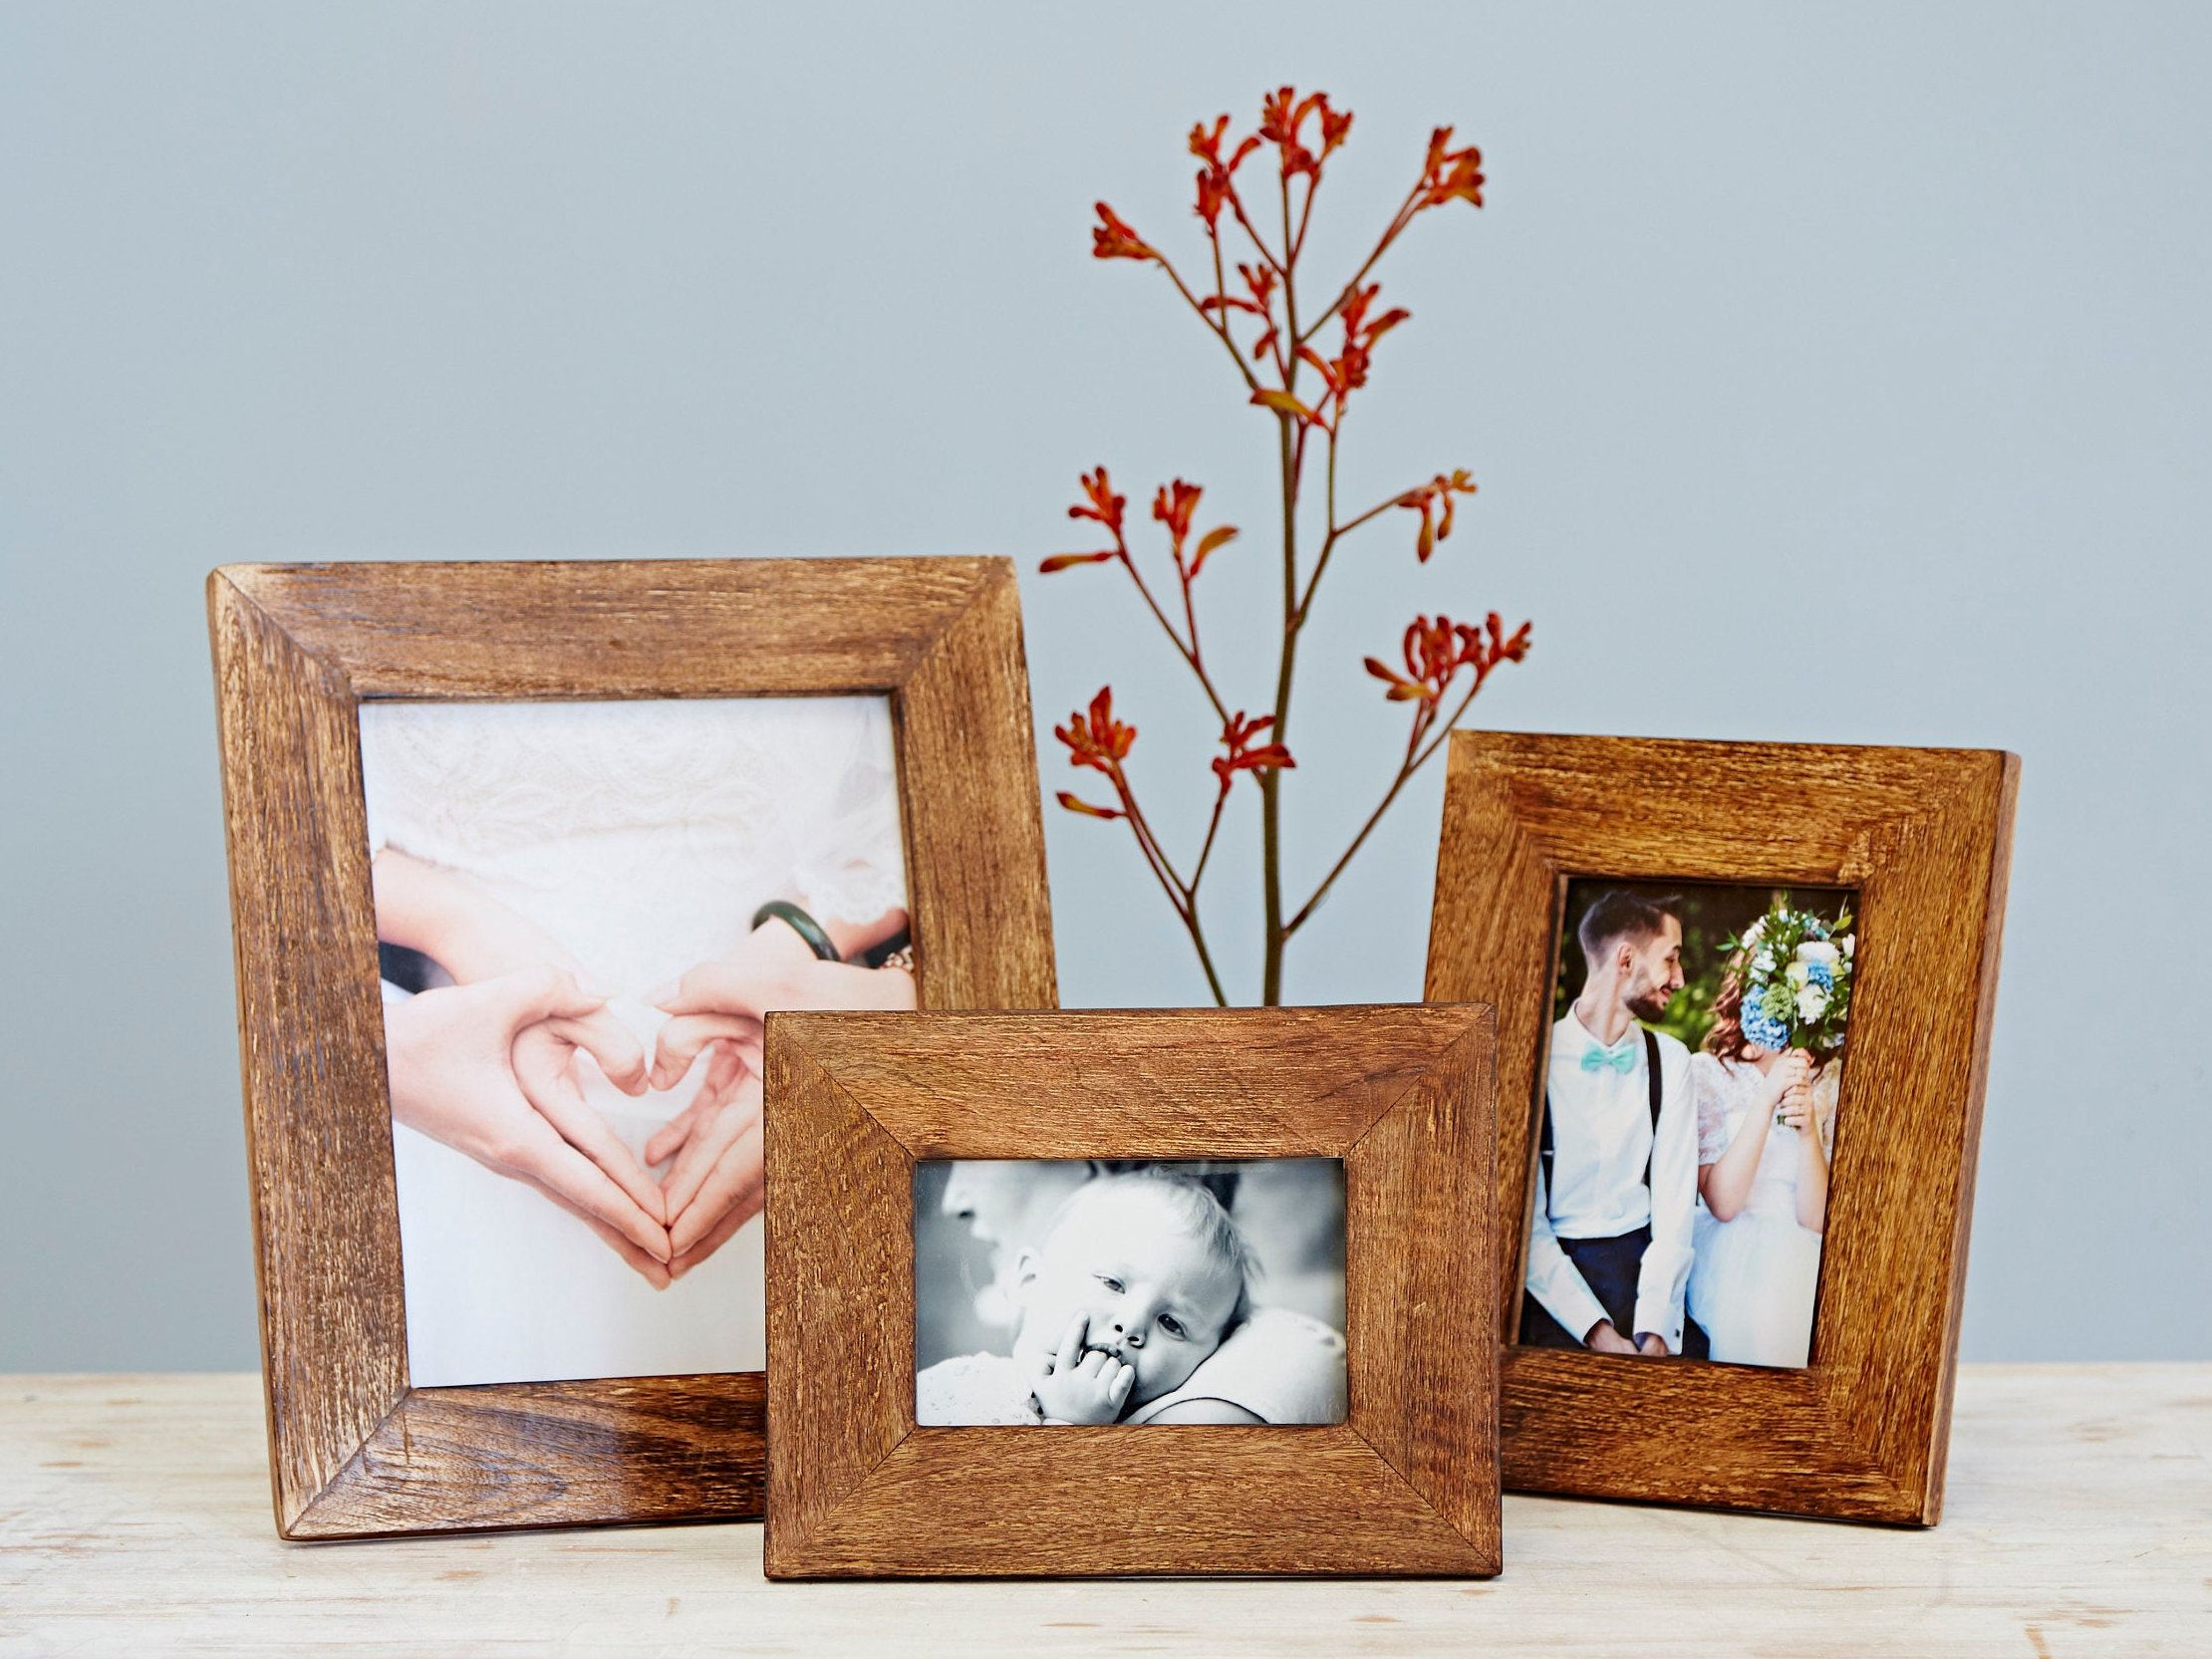 Handmade Natural Wooden Photo Frame 4x6 Picture Frame 5x7 Picture Frames 8x10 Picture Frame Rustic Frame Handcrafted Photo Frames Wooden Photo Frames Rustic Photo Frames Rustic Frames